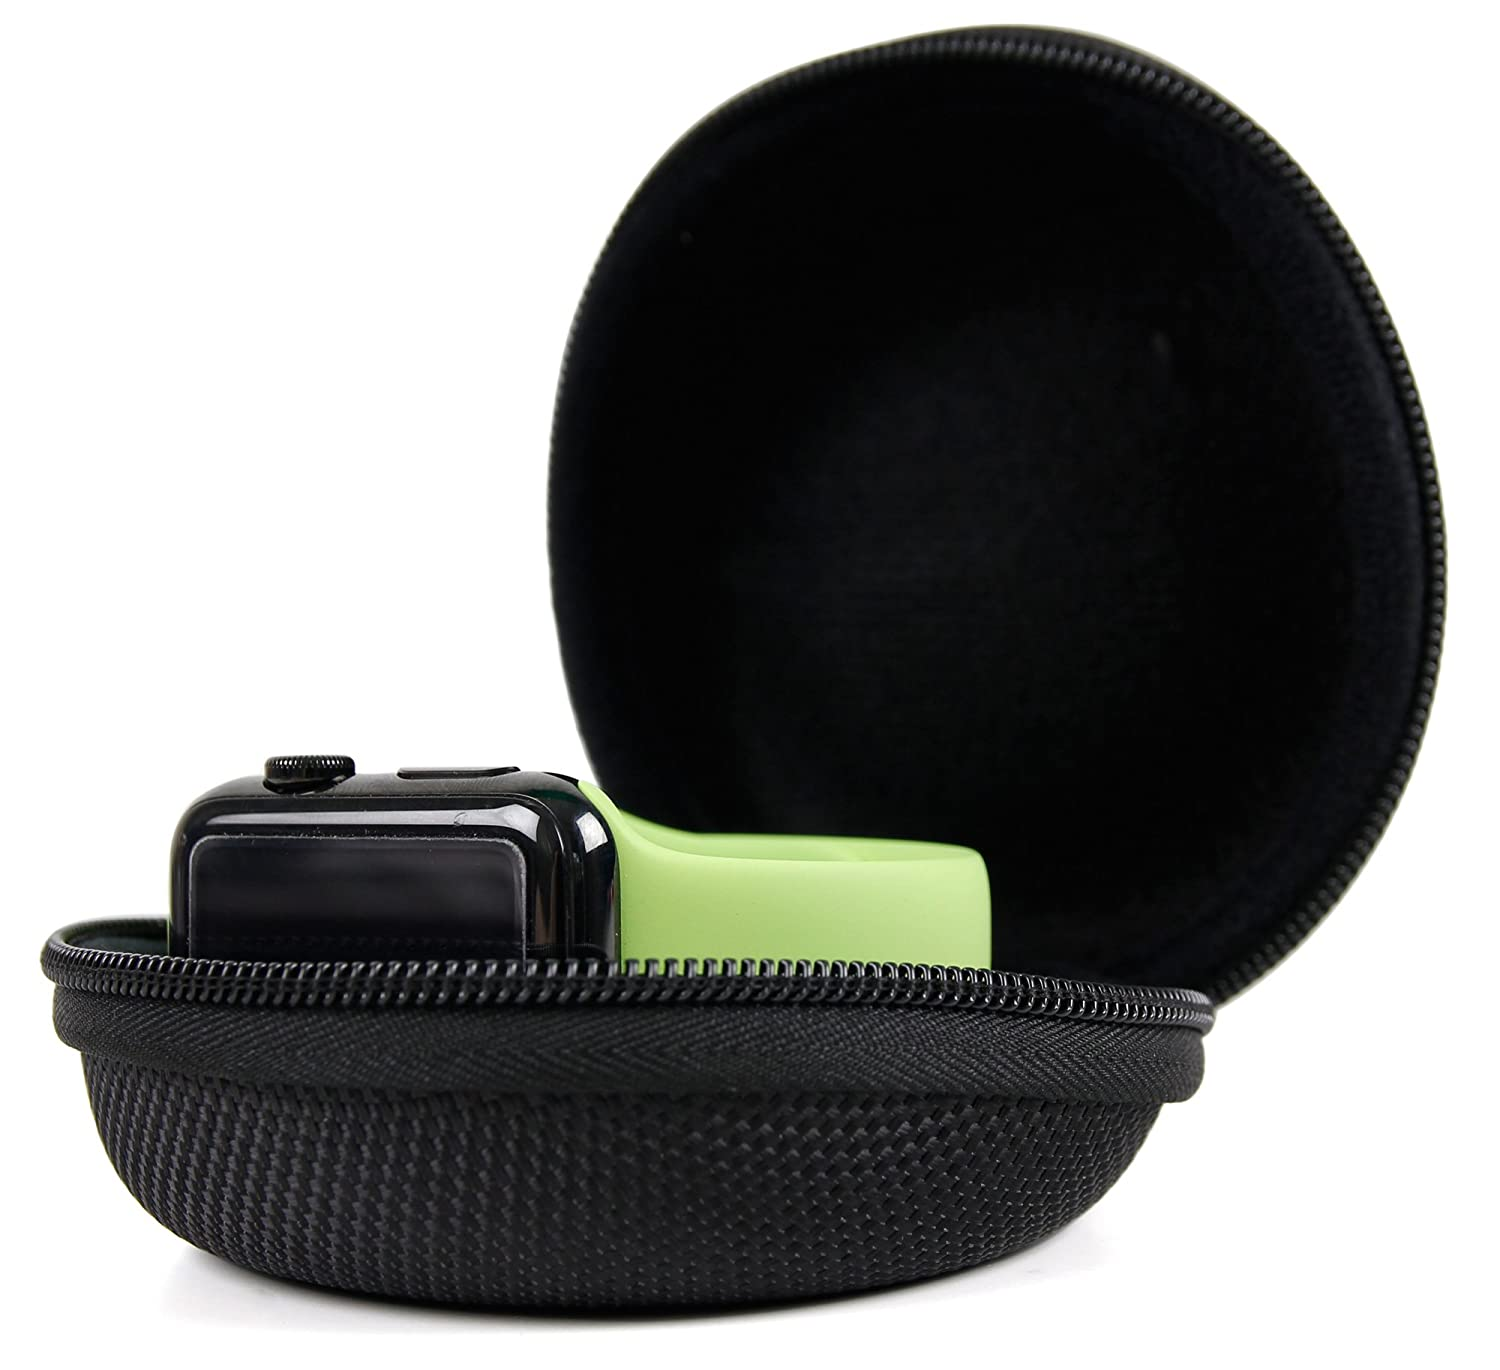 DURAGADGET Funda para Sony Smartwatch 3 Classic Guardar Su Dispositivo! - Negra